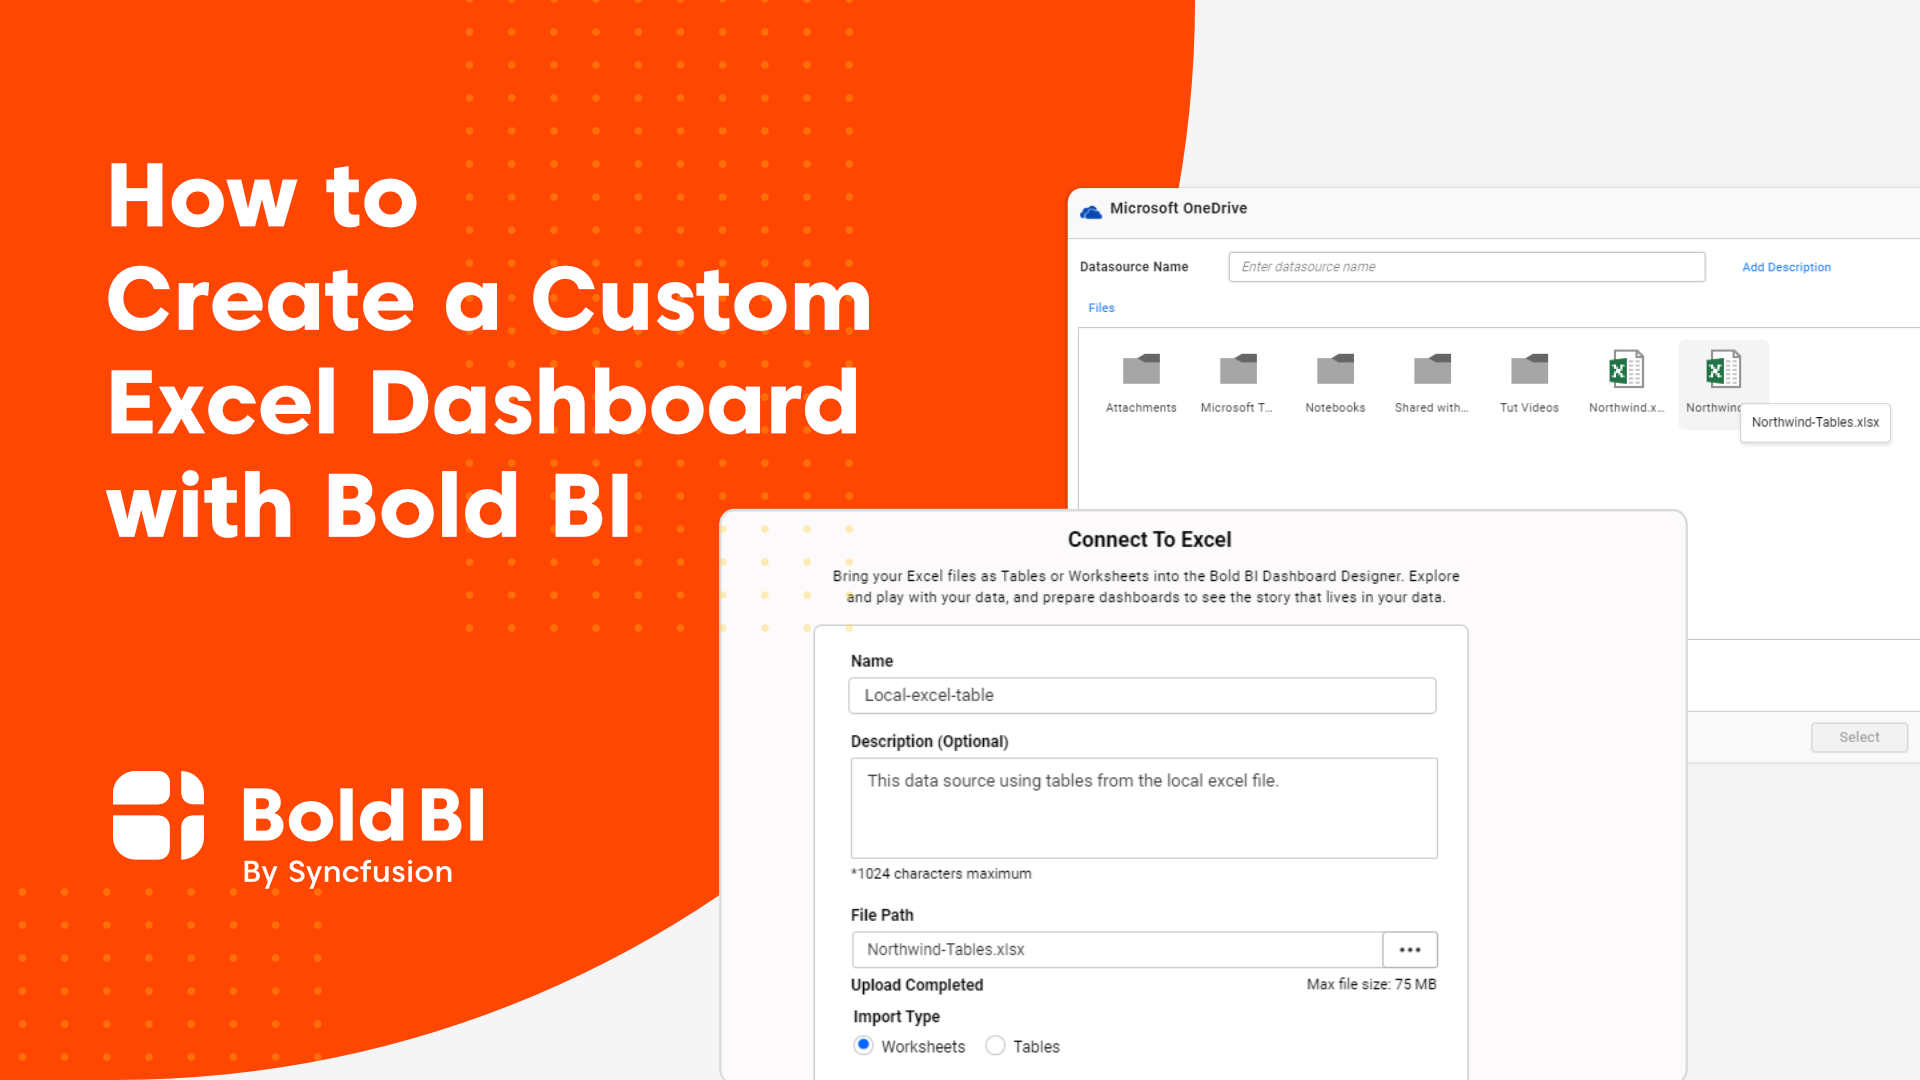 How to Create a Custom Excel Dashboard with Enterprise BI